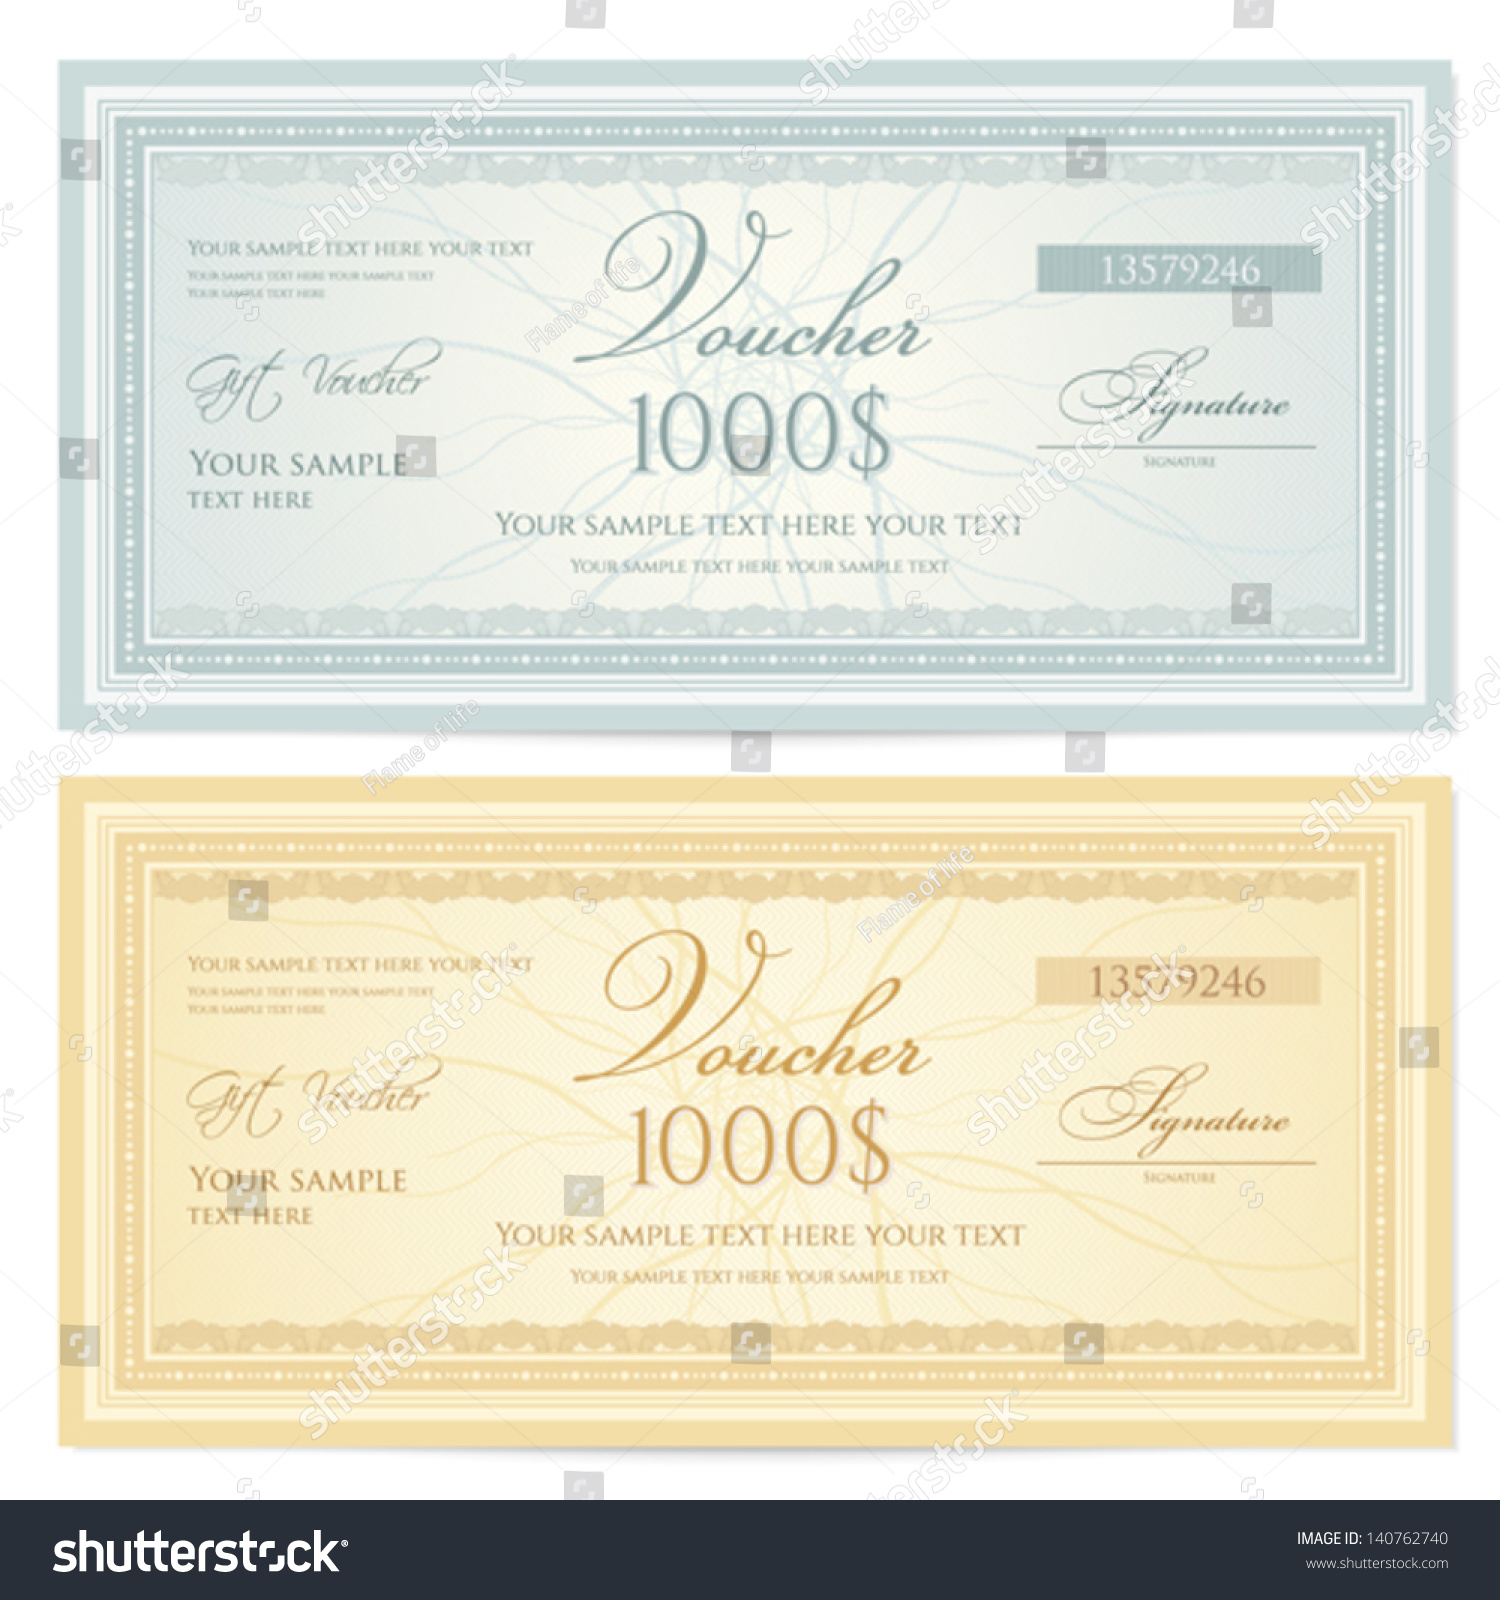 Gift Certificate / Voucher Template With Guilloche Pattern (watermarks) And  Border. Background For Coupon, Banknote, Money Design, Currency, Note,  Check, ...  Money Voucher Template